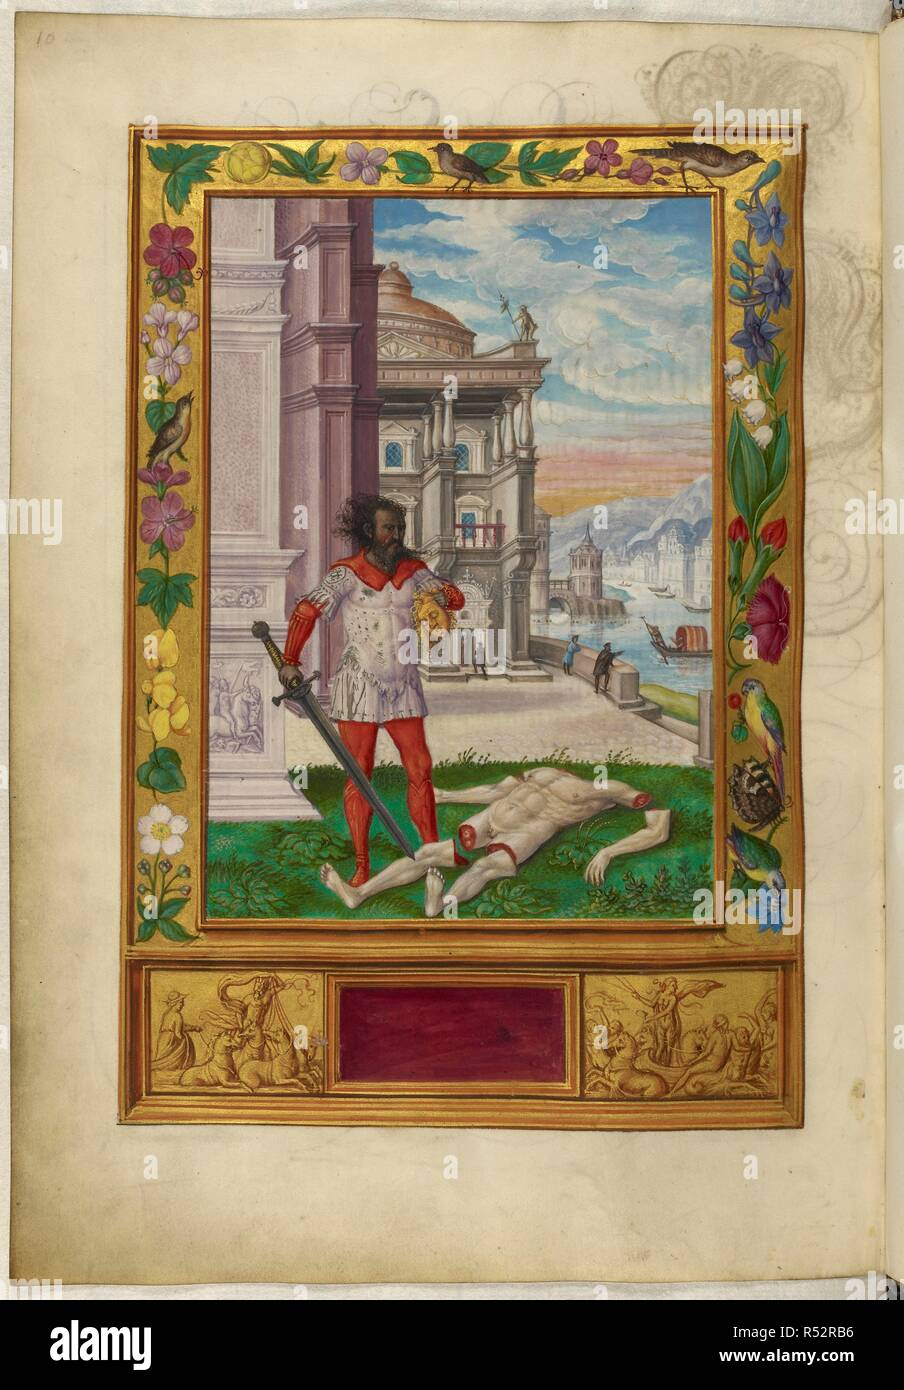 Illustration of the Sixth Parable; a dishevelled man holding a golden head, the dismembered corpse at his feet; borders decorated with birds and flowers. Splendor Solis. Germany, 1582. (Whole folio) Illustration of the Sixth Parable; a dishevelled man holding a golden head, the dismembered corpse at his feet; borders decorated with birds and flowers.  Image taken from Splendor Solis.  Originally published/produced in Germany, 1582. . Source: Harley 3469, f.20v. Language: German. Author: Trismosin, Salomon. Stock Photo